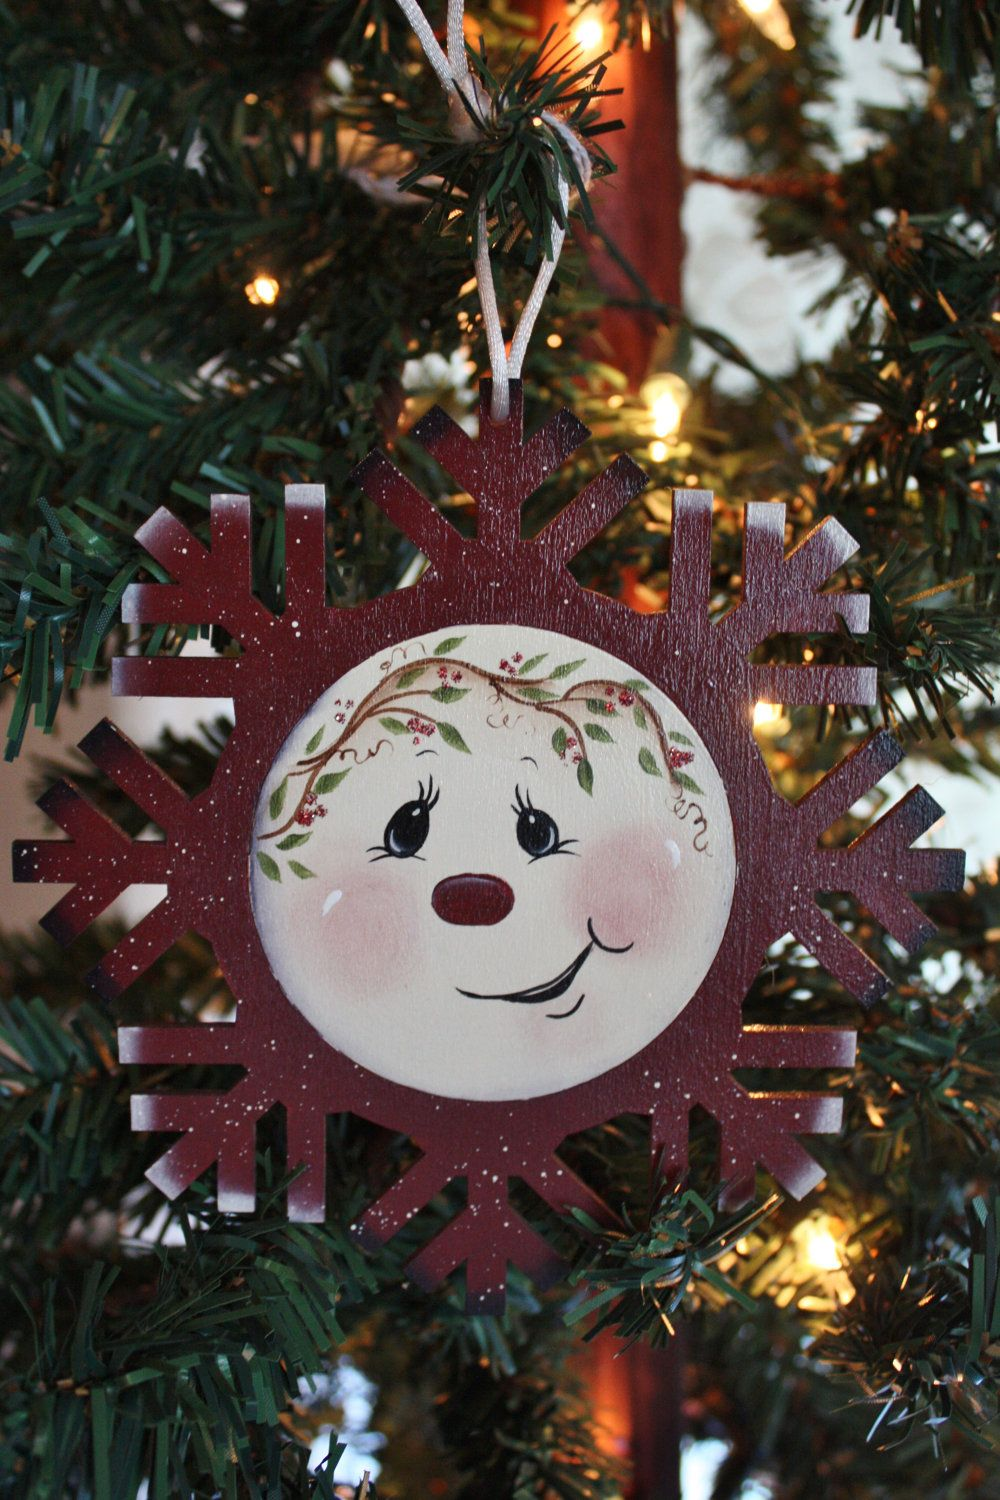 Snowflake Wood Ornament With Snowman Face Heart Christmas Ornaments Wood Ornaments Christmas Crafts